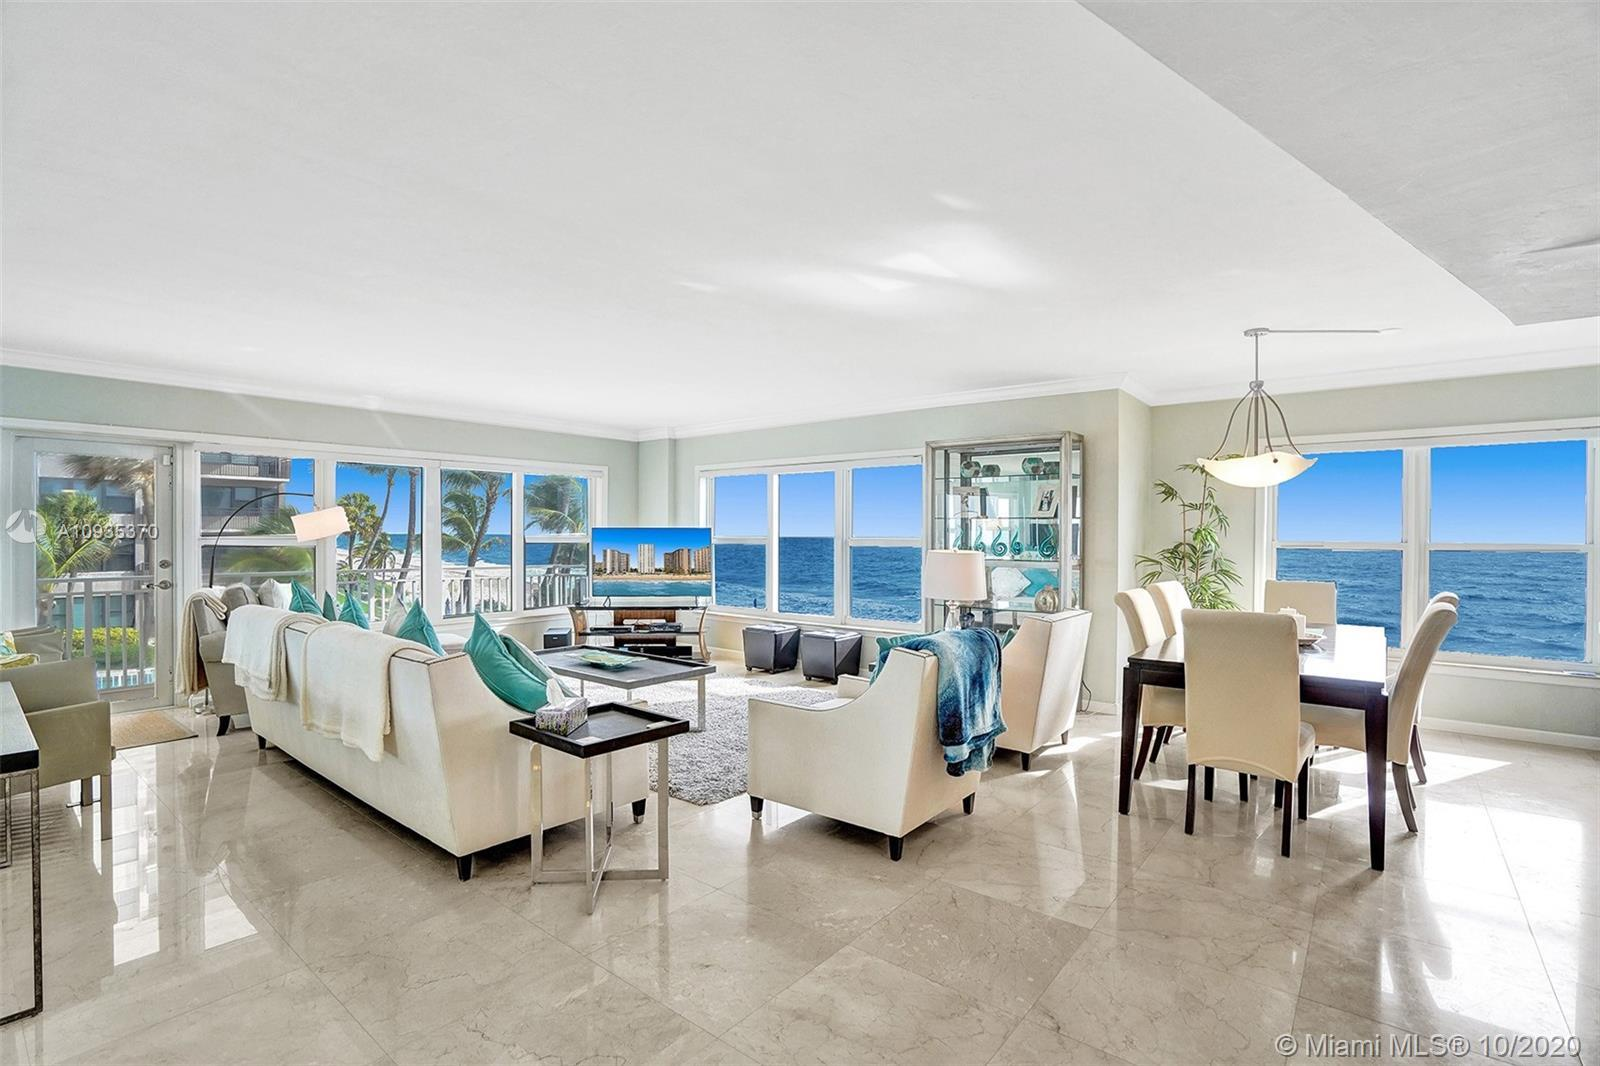 Don't miss out on the chance to own this beautiful direct ocean 3 bedroom condo.  Occupying the Nort